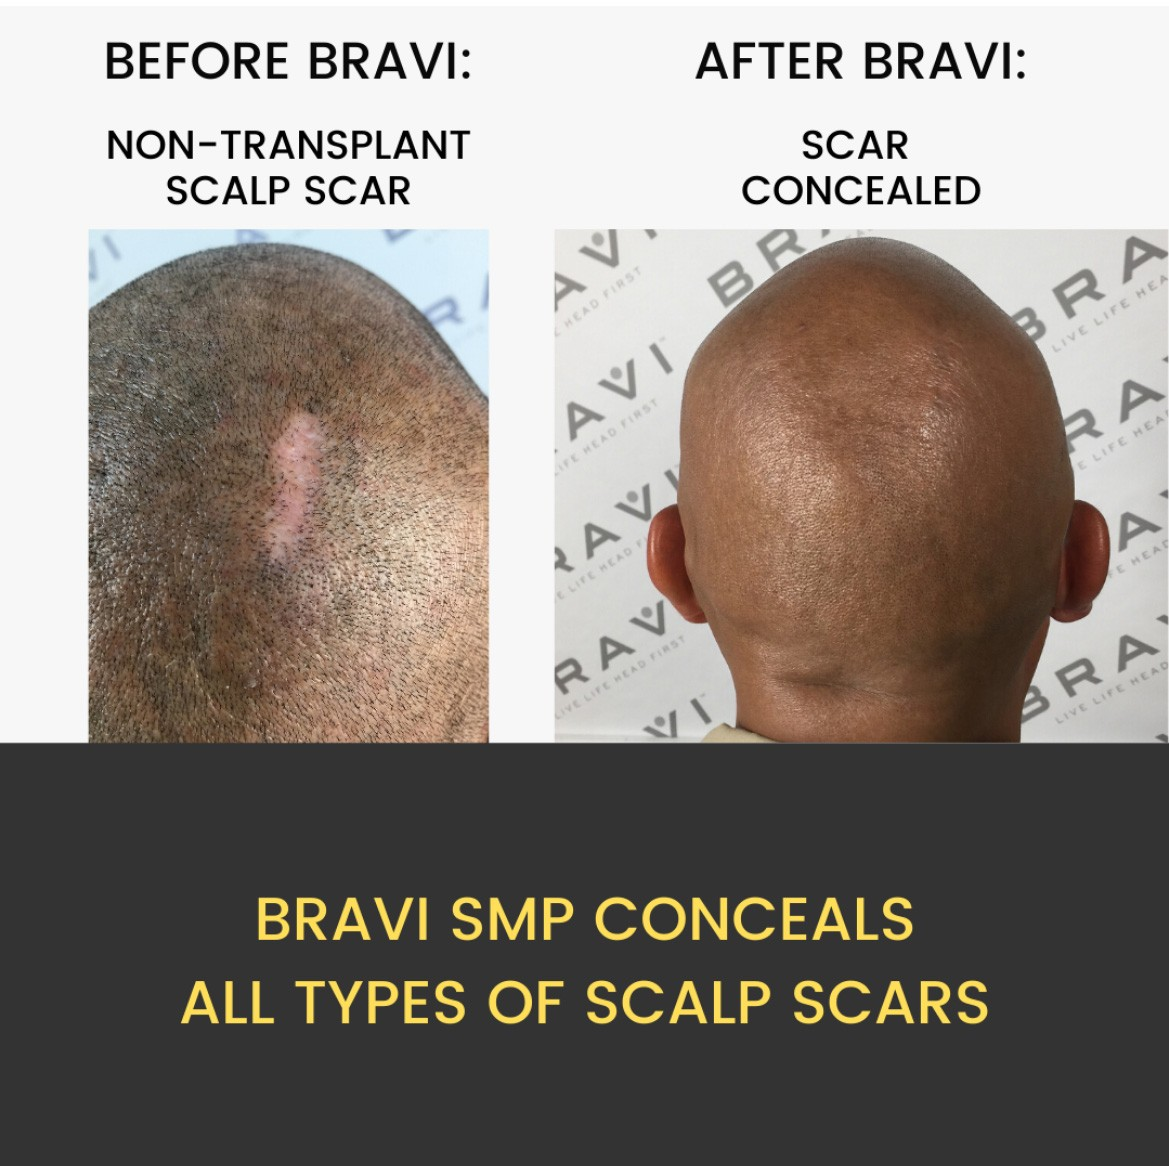 BRAVI Conceal Uses Expertly-Applied Scalp MicroPigmentation SMP To Hide Hair Transplant And Other Head Scars